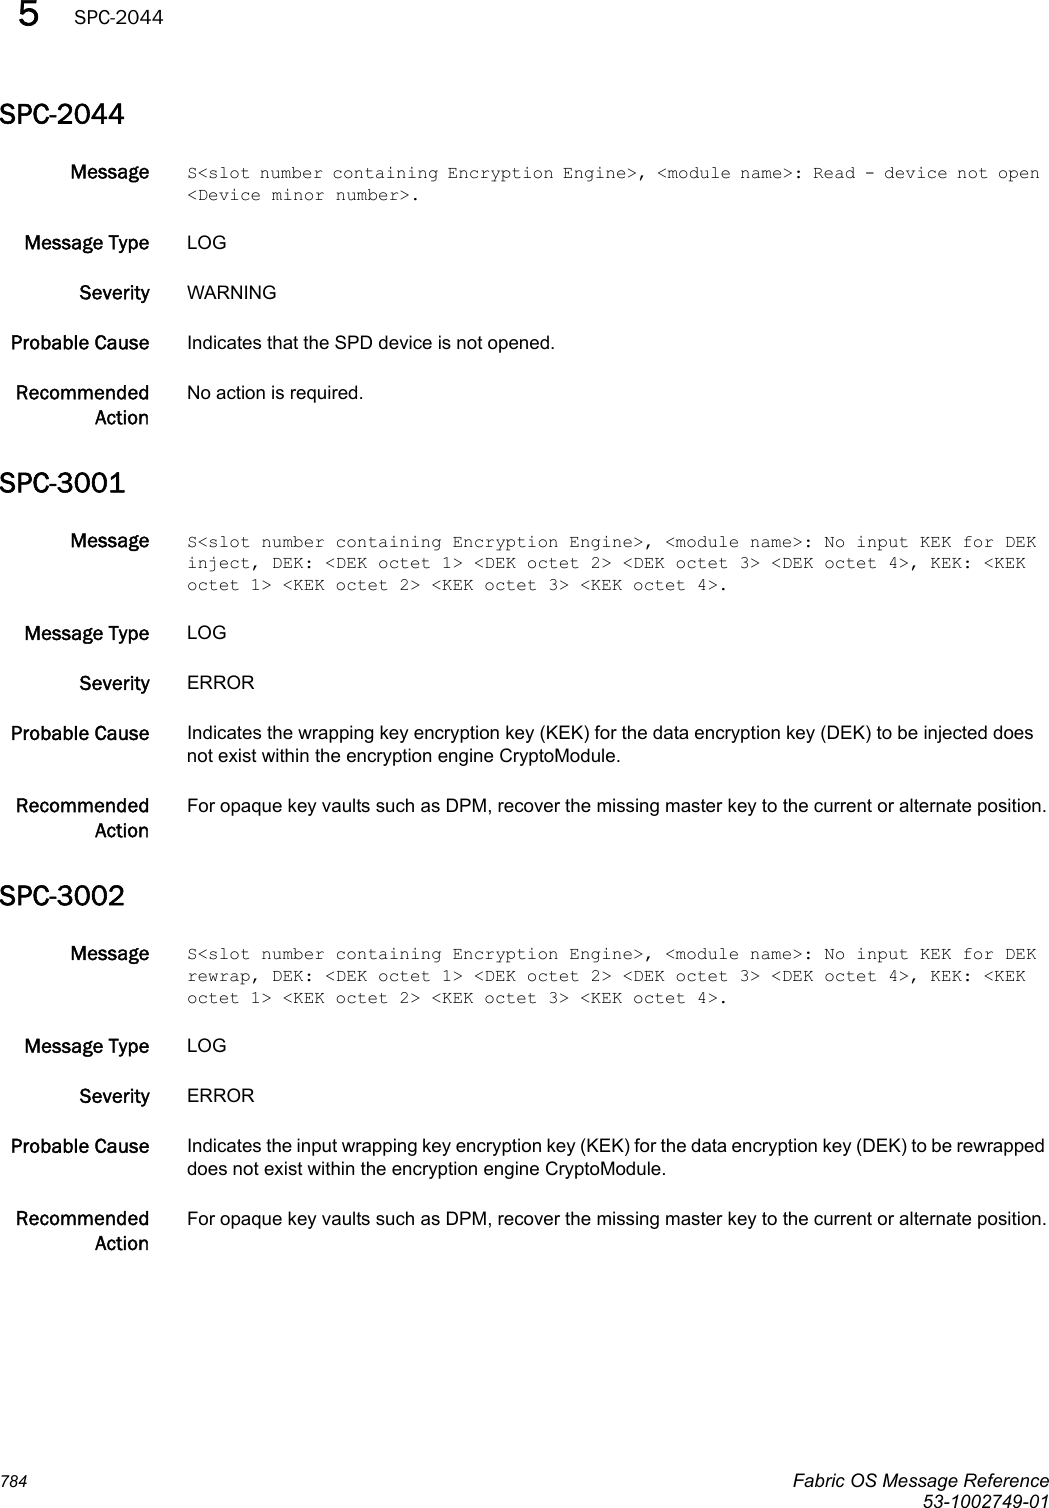 Dell Brocade 5300 Messages Reference Guide Fabric OS Message